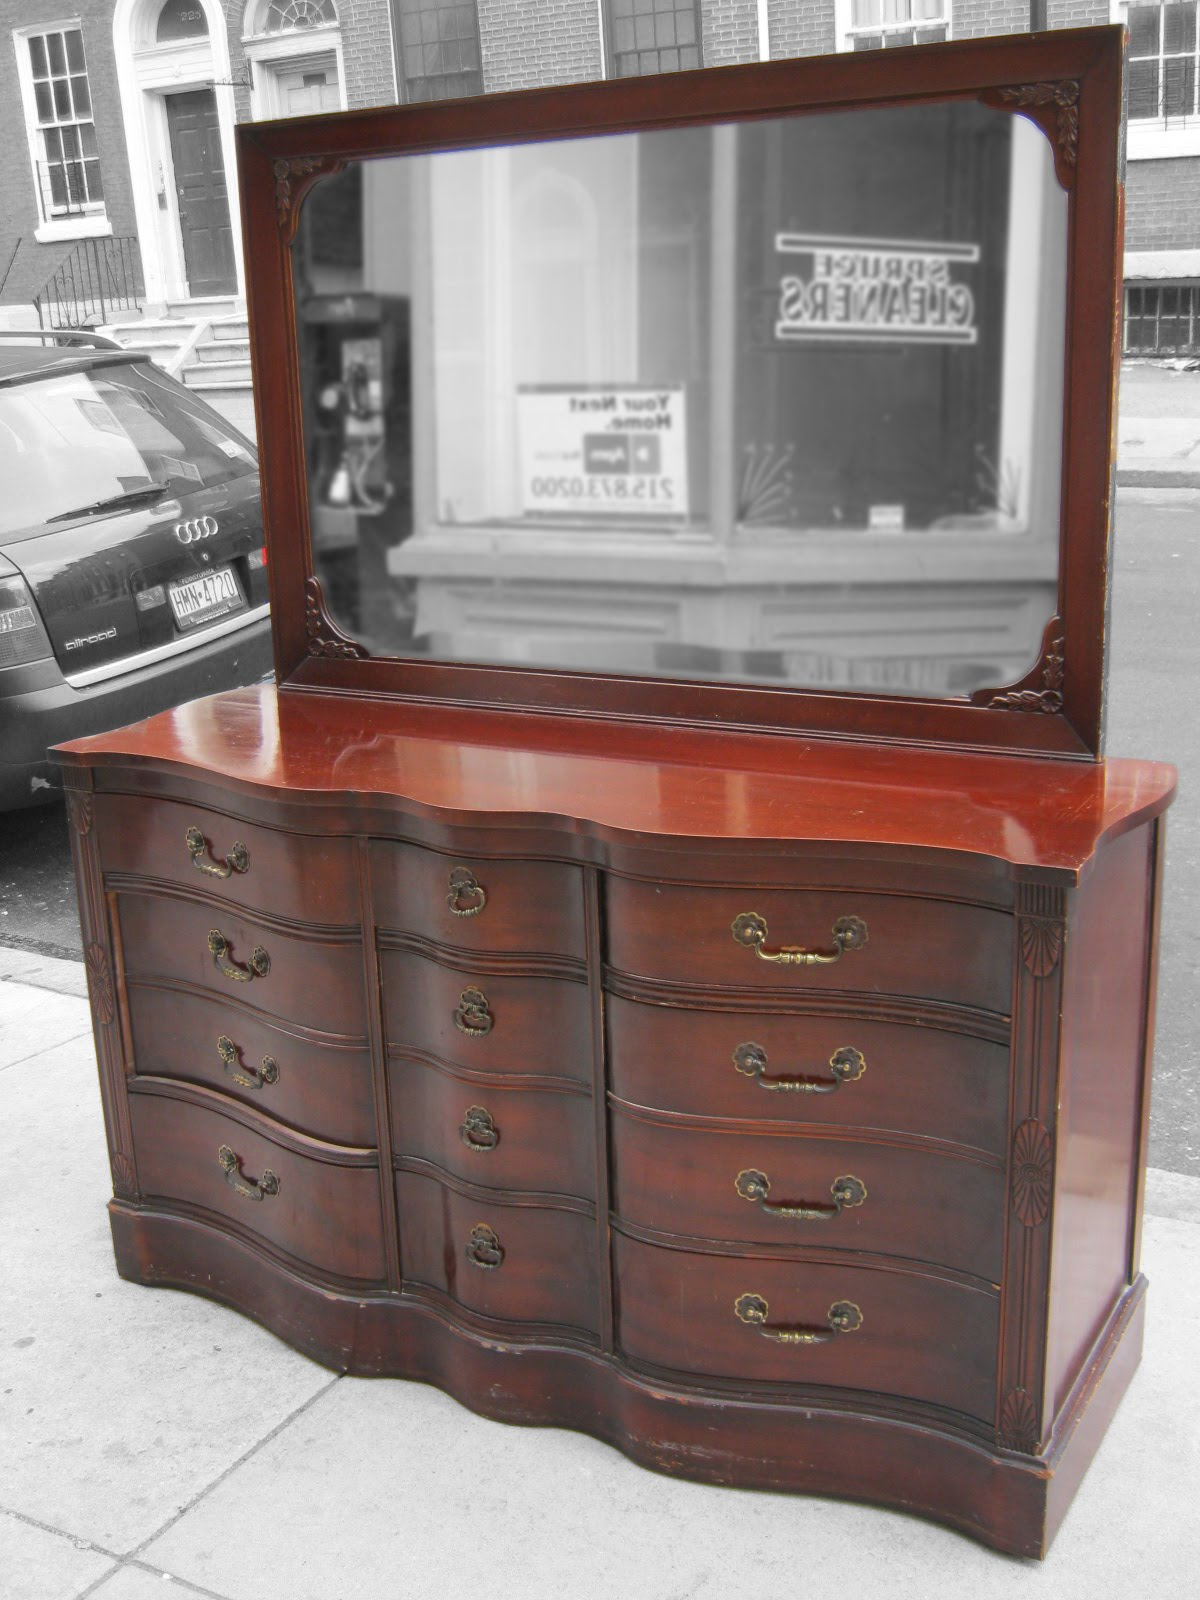 Uhuru Furniture & Collectibles: 1940's Mahogany Bedroom